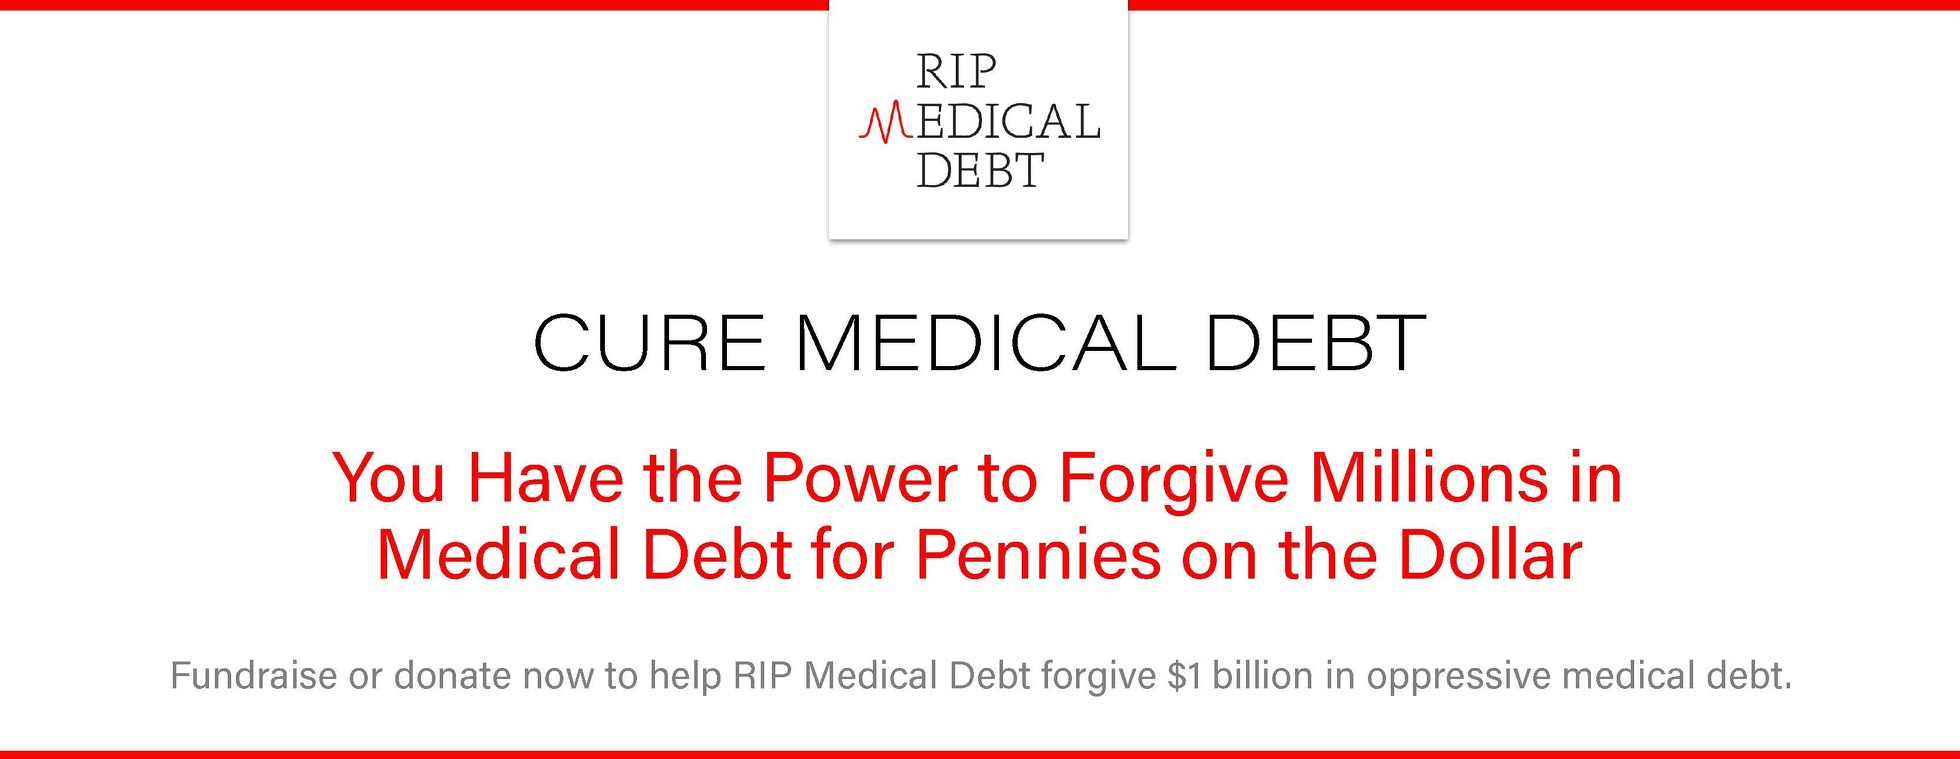 National Campaign to Abolish Medical Debt